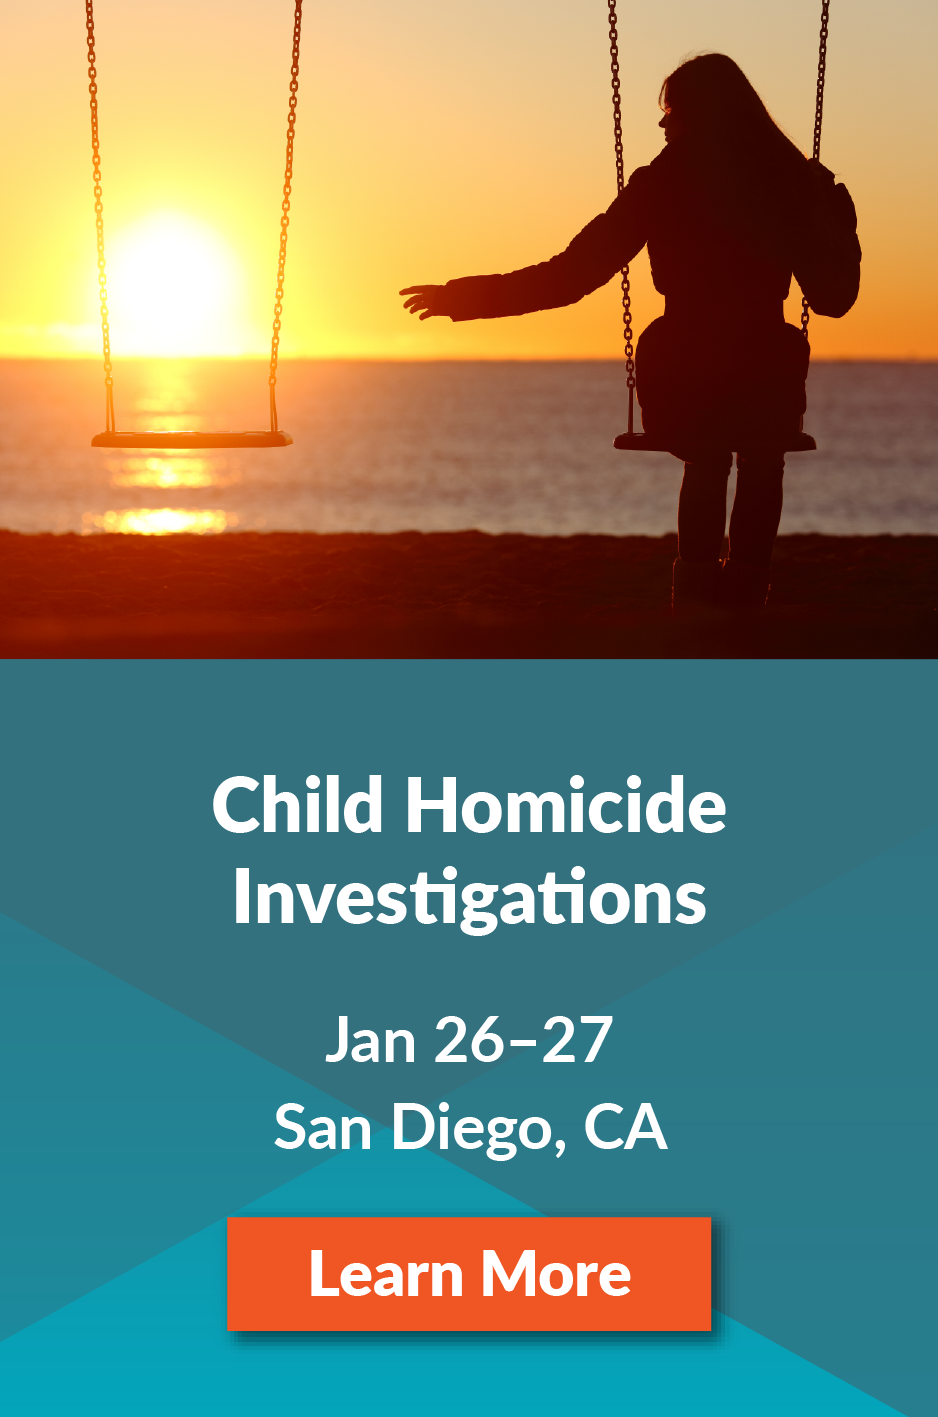 Child Homicide Investigations